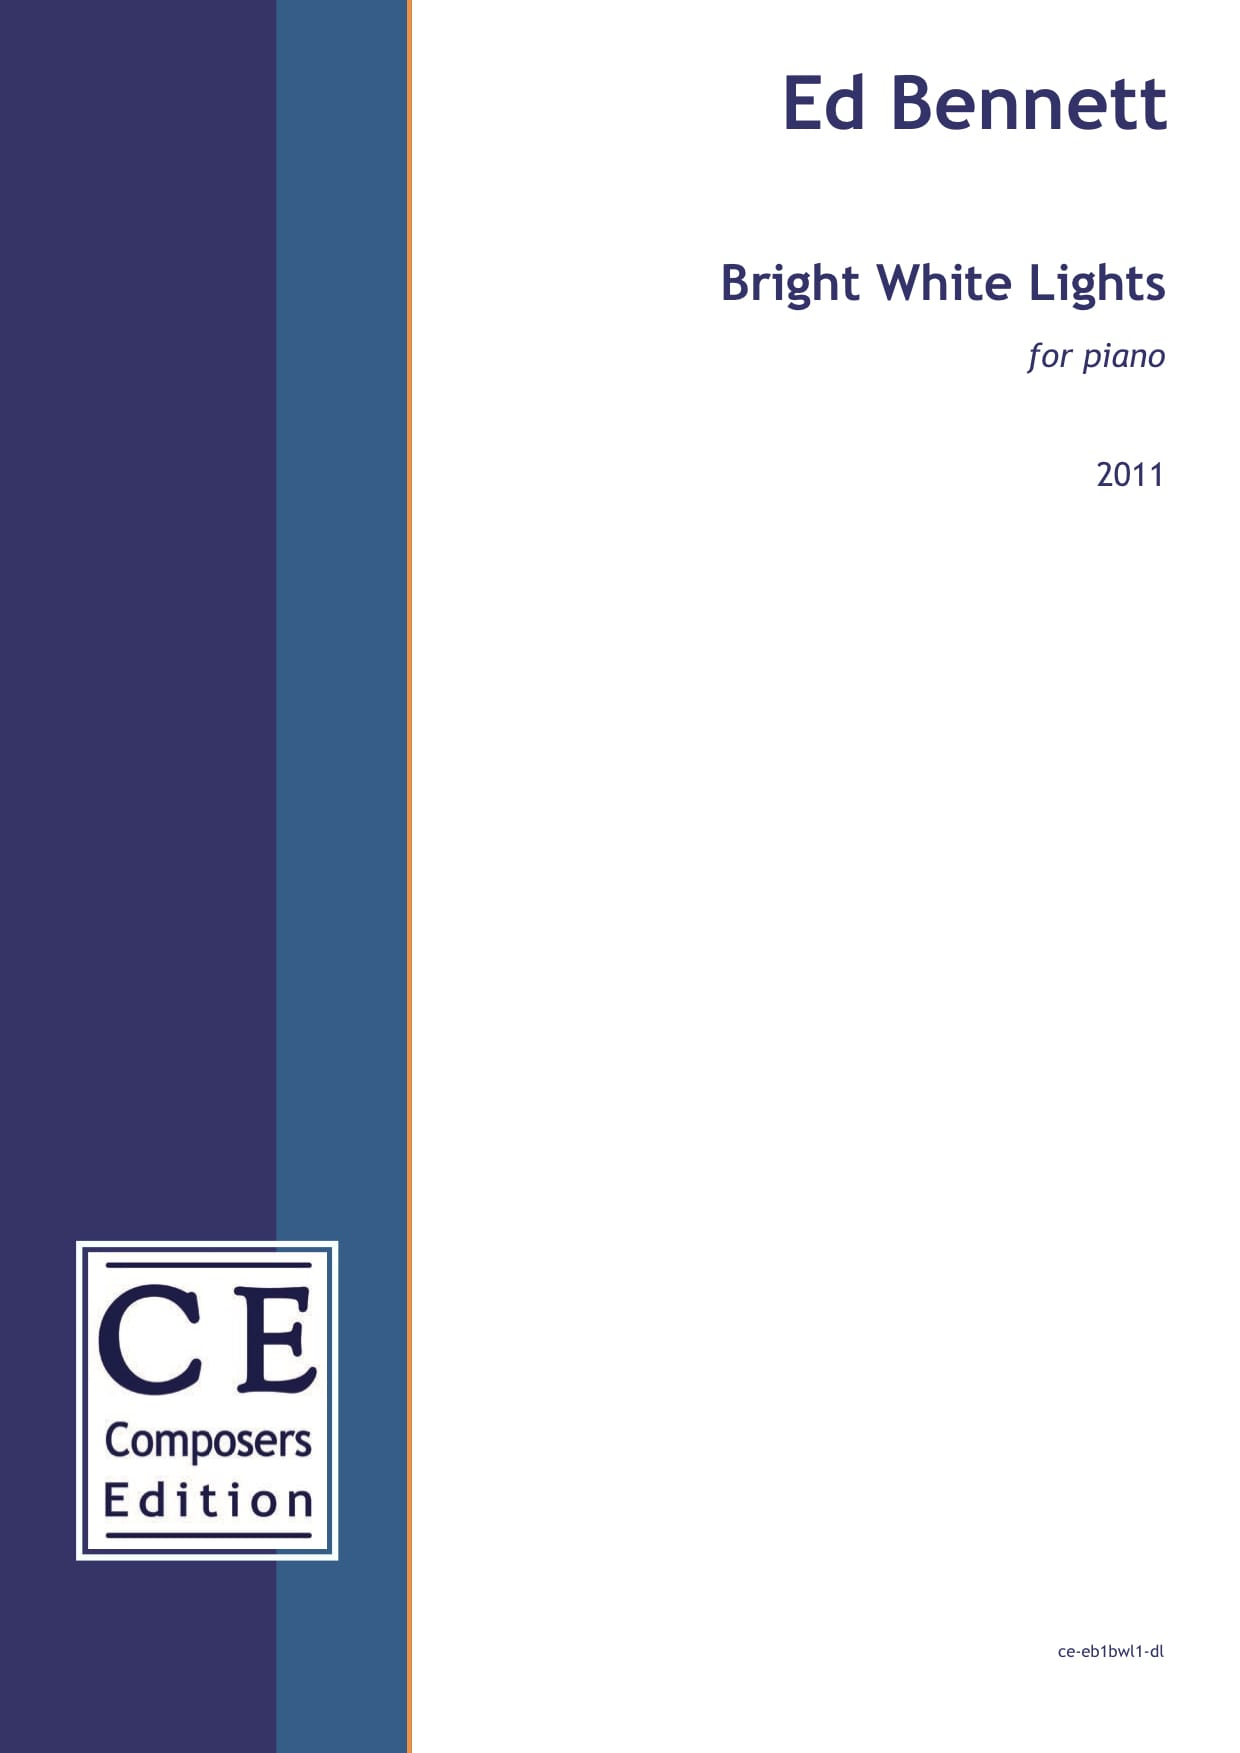 Ed Bennett: Bright White Lights for piano